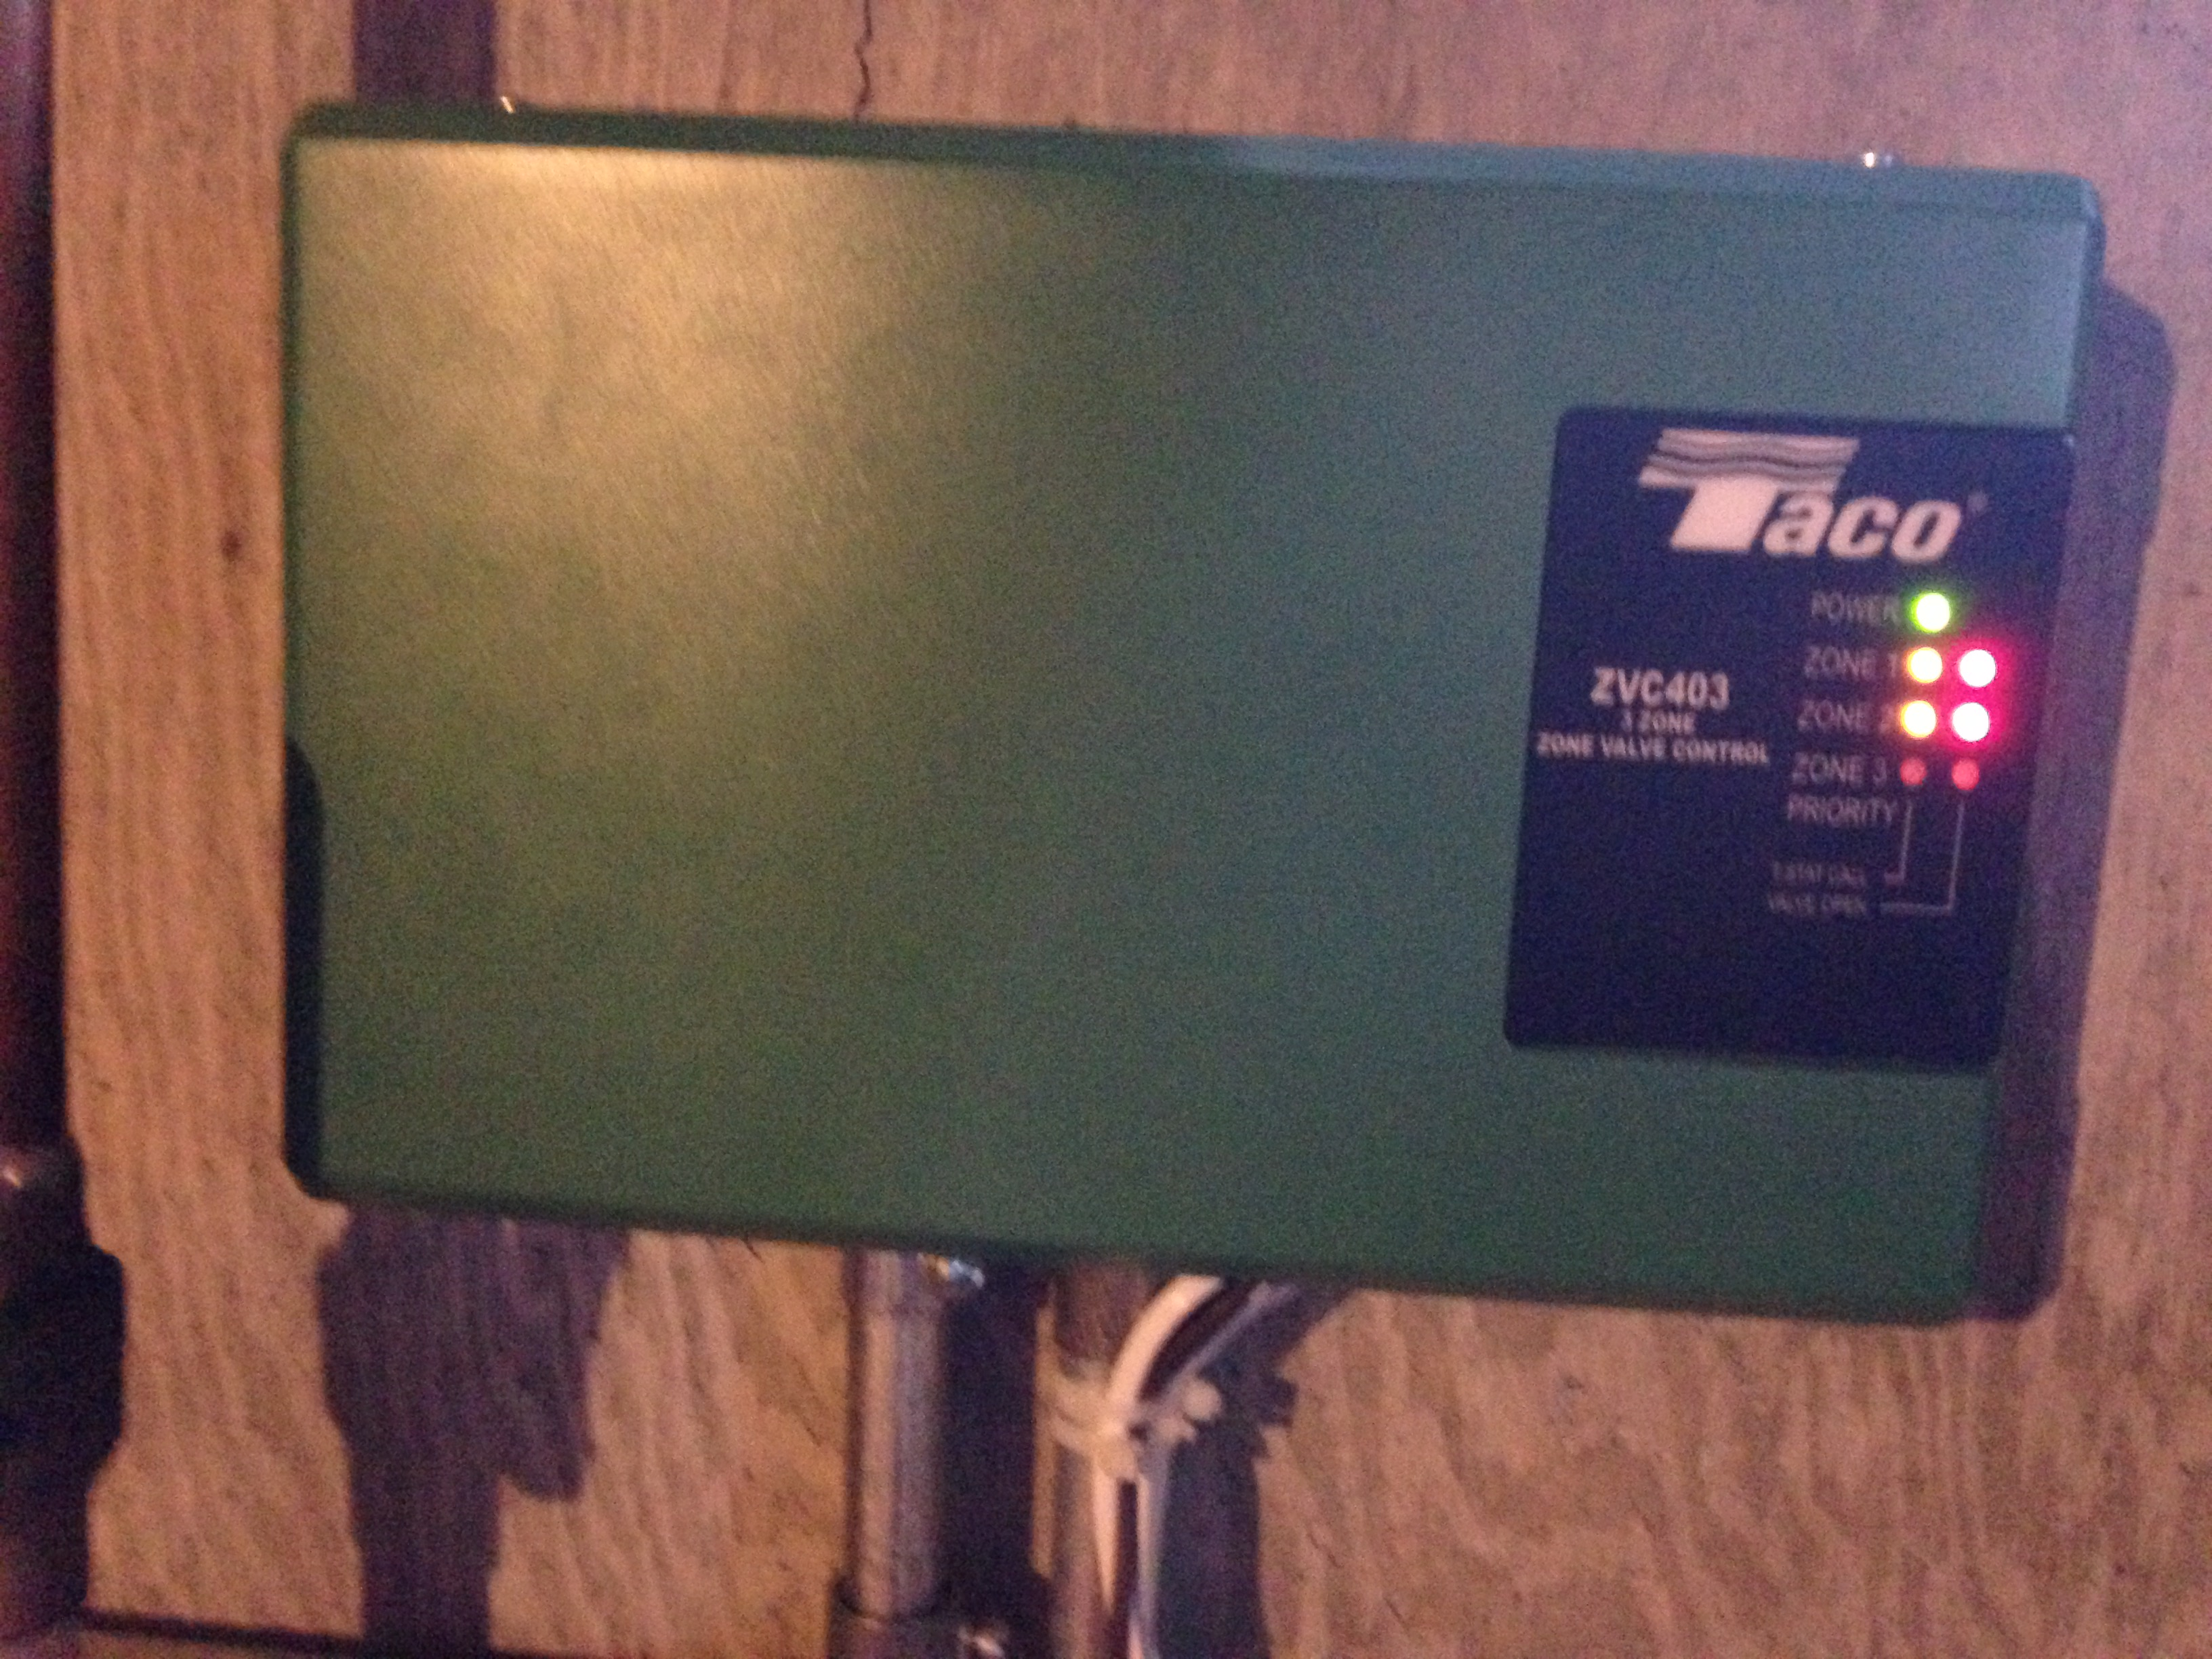 Taco ZVC403 issue? — Heating Help: The Wall